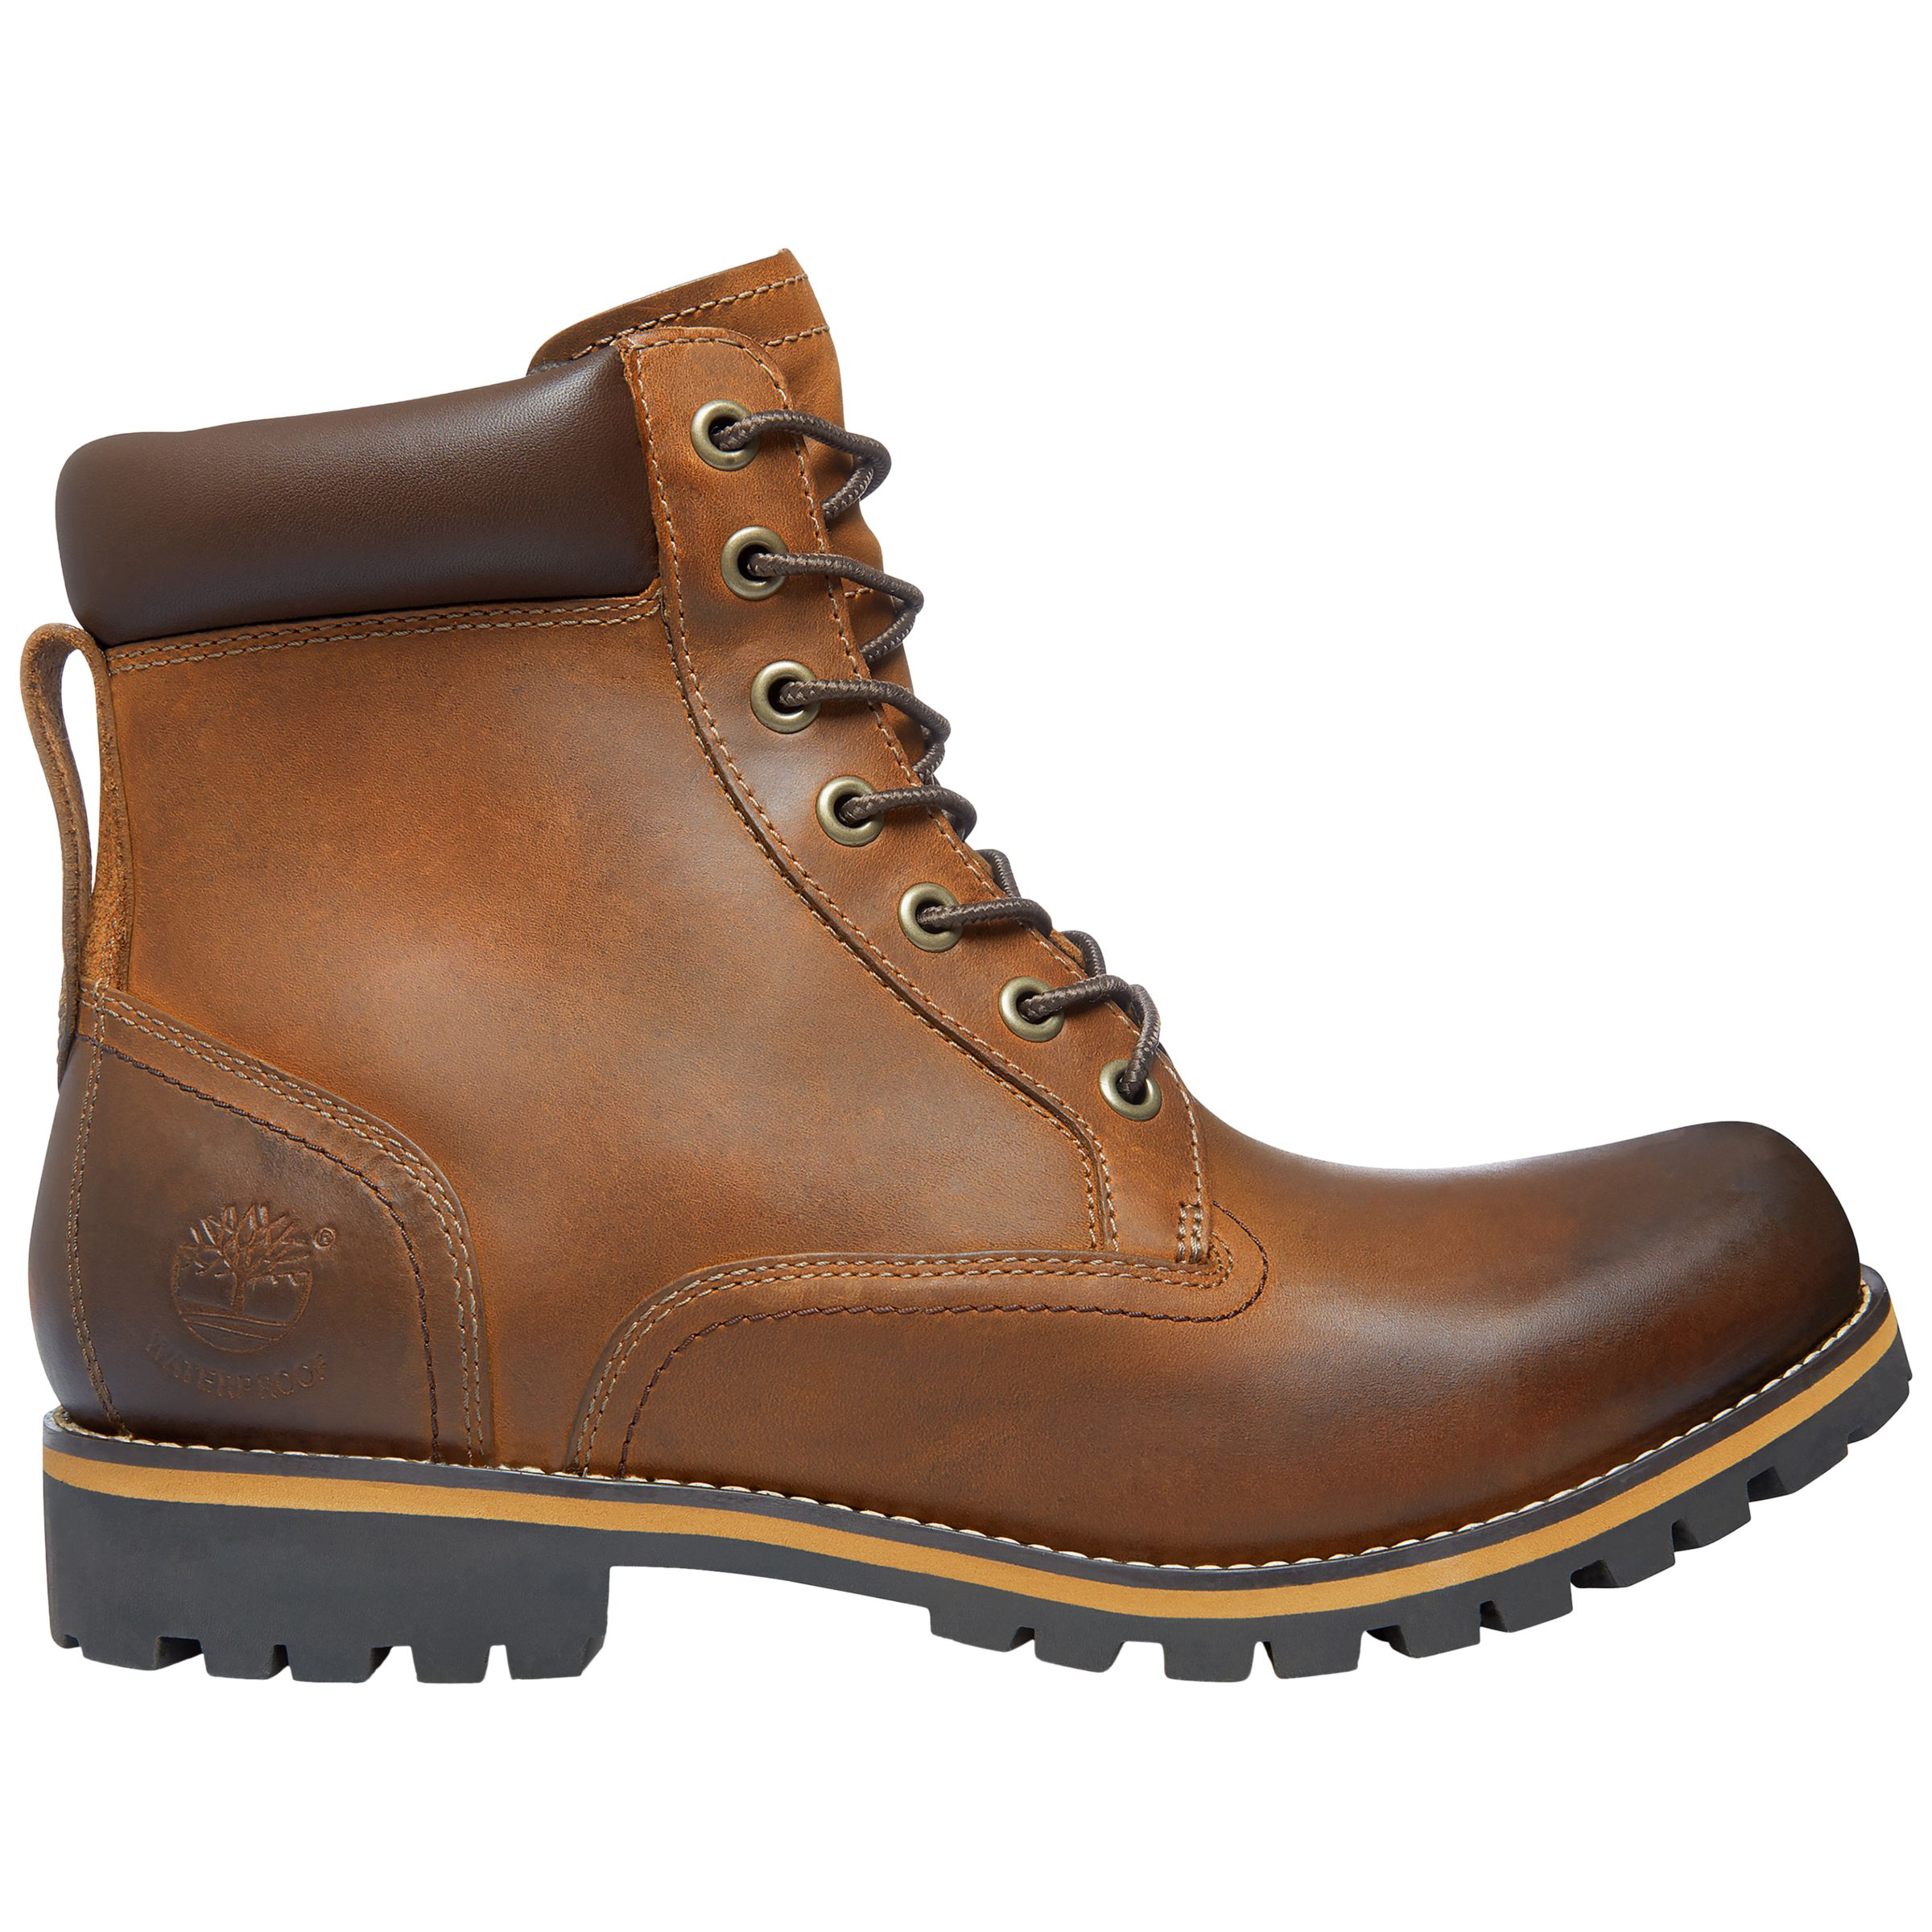 18363a266a2 Timberland Earthkeepers Rugged 6-Inch Waterproof Plain Toe Boots at ...